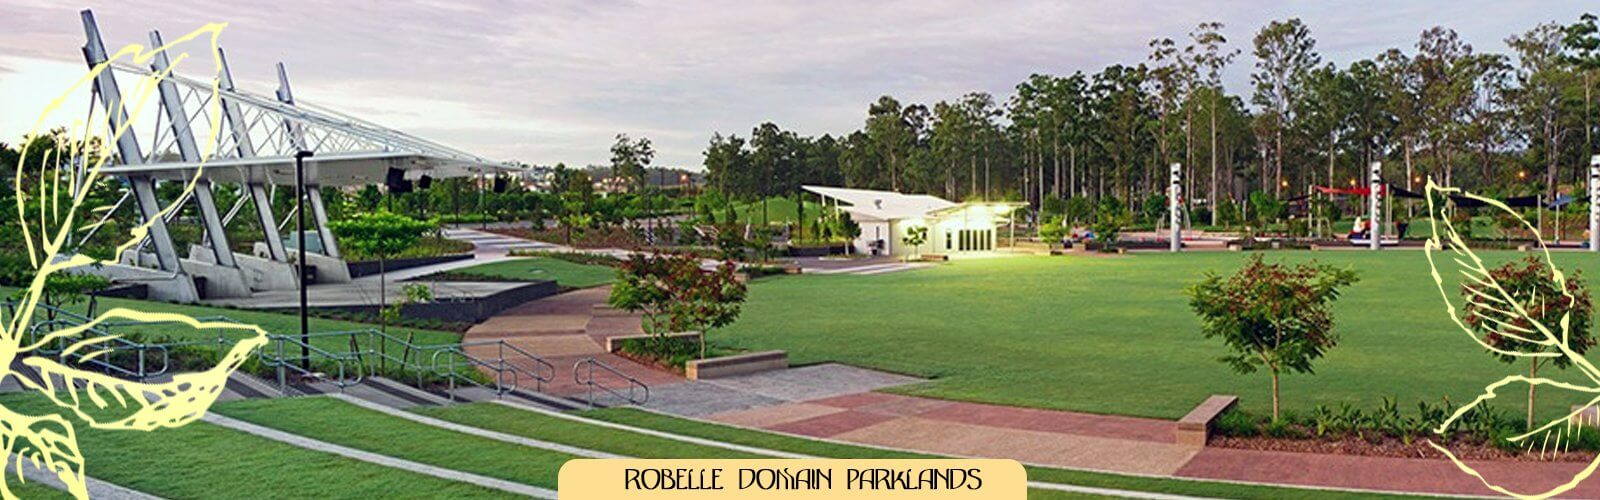 The Robelle Domain central parkland is Greater Springfield's world-class recreational space with a huge variety of scenic and interactive spaces including the Springfield Lagoon.